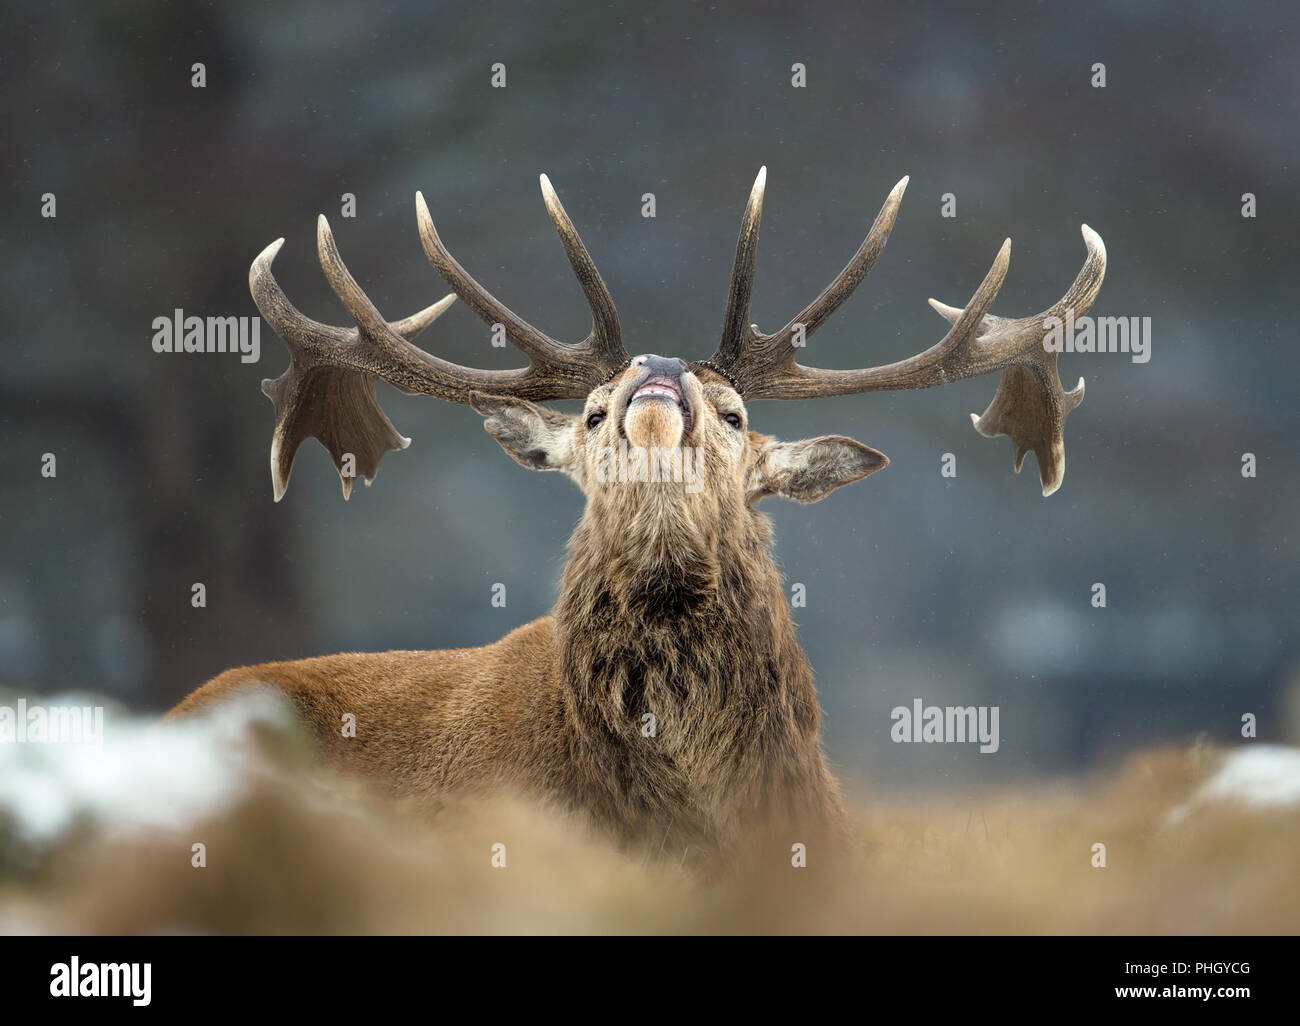 Close up of a Red deer stag bellowing in winter, UK. - Stock Image